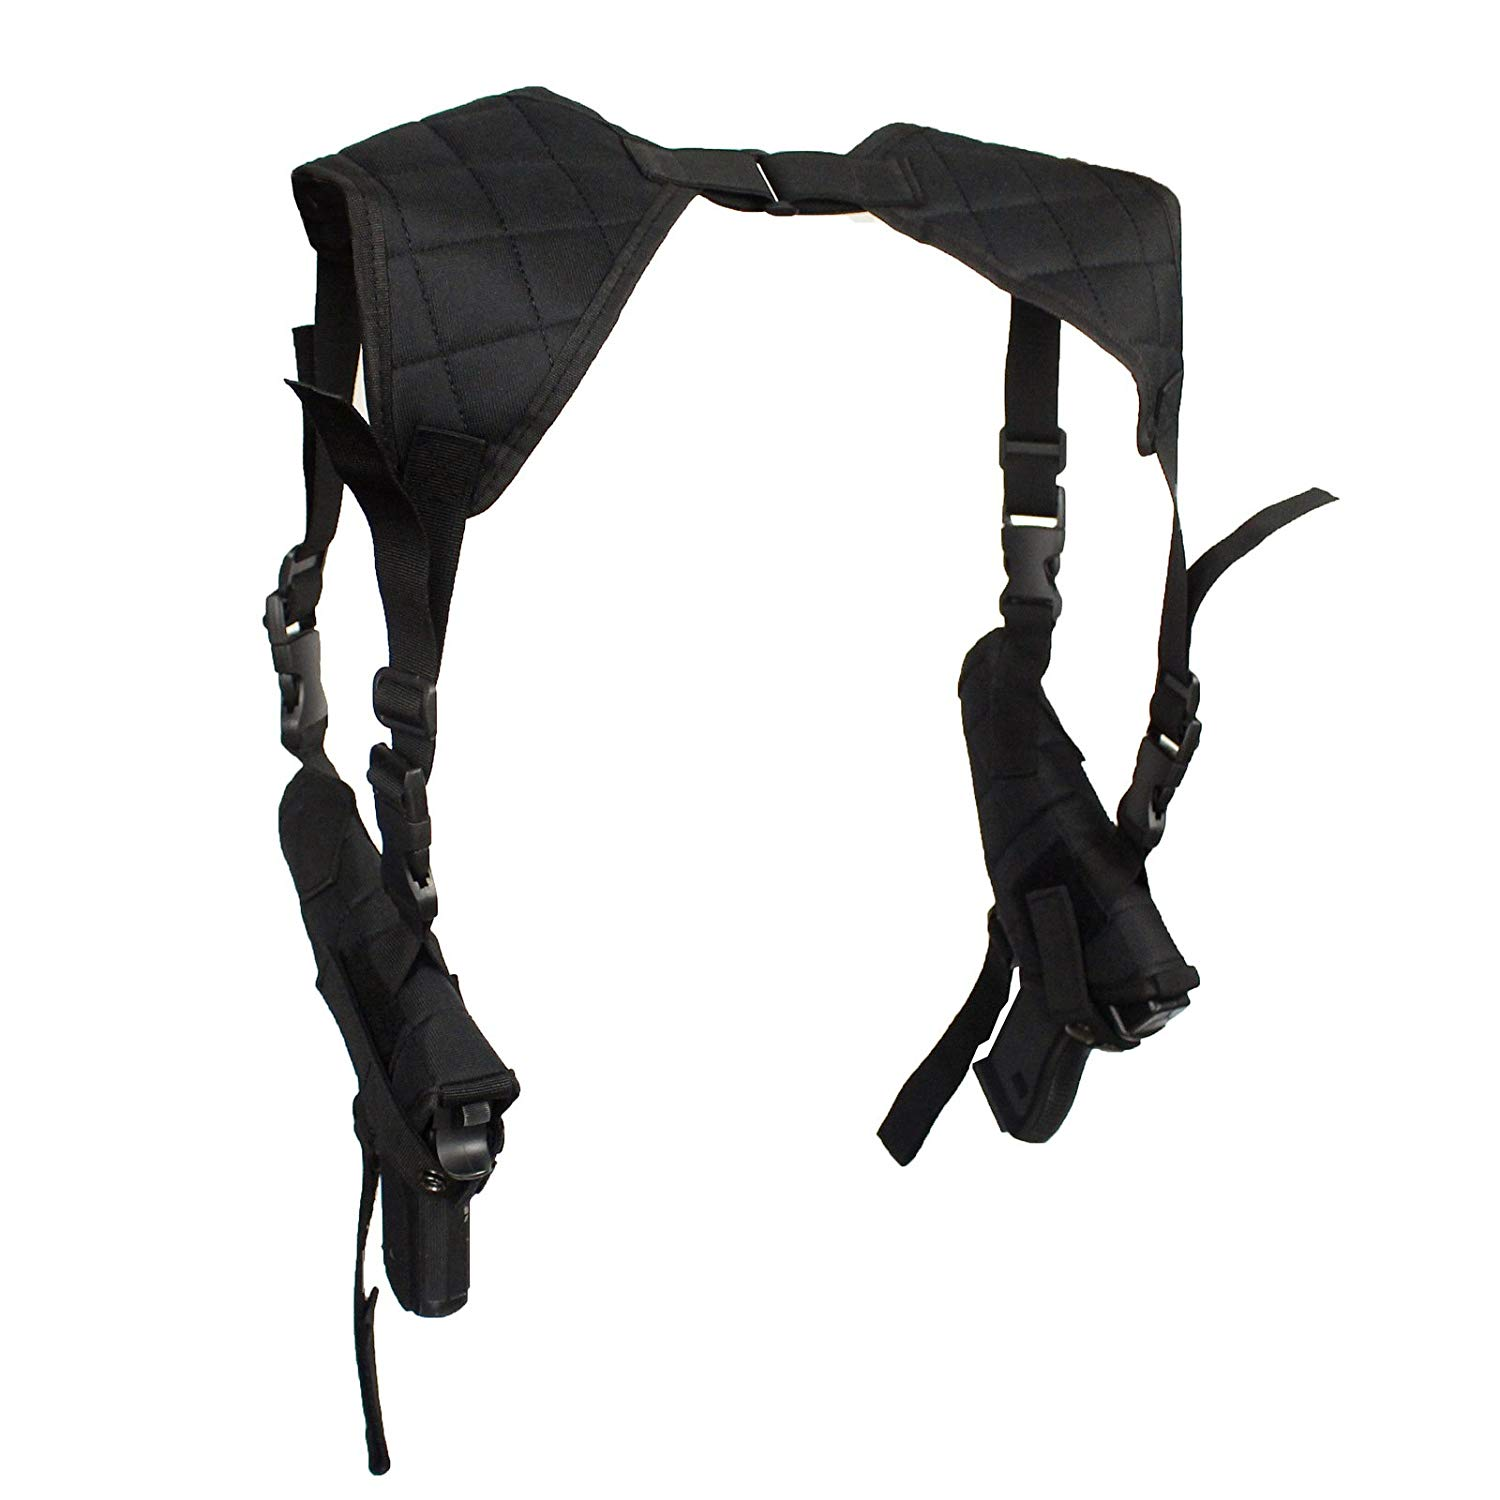 Concealed Carry Shoulder Holster Fully Adjustable Universal Fit All Handguns